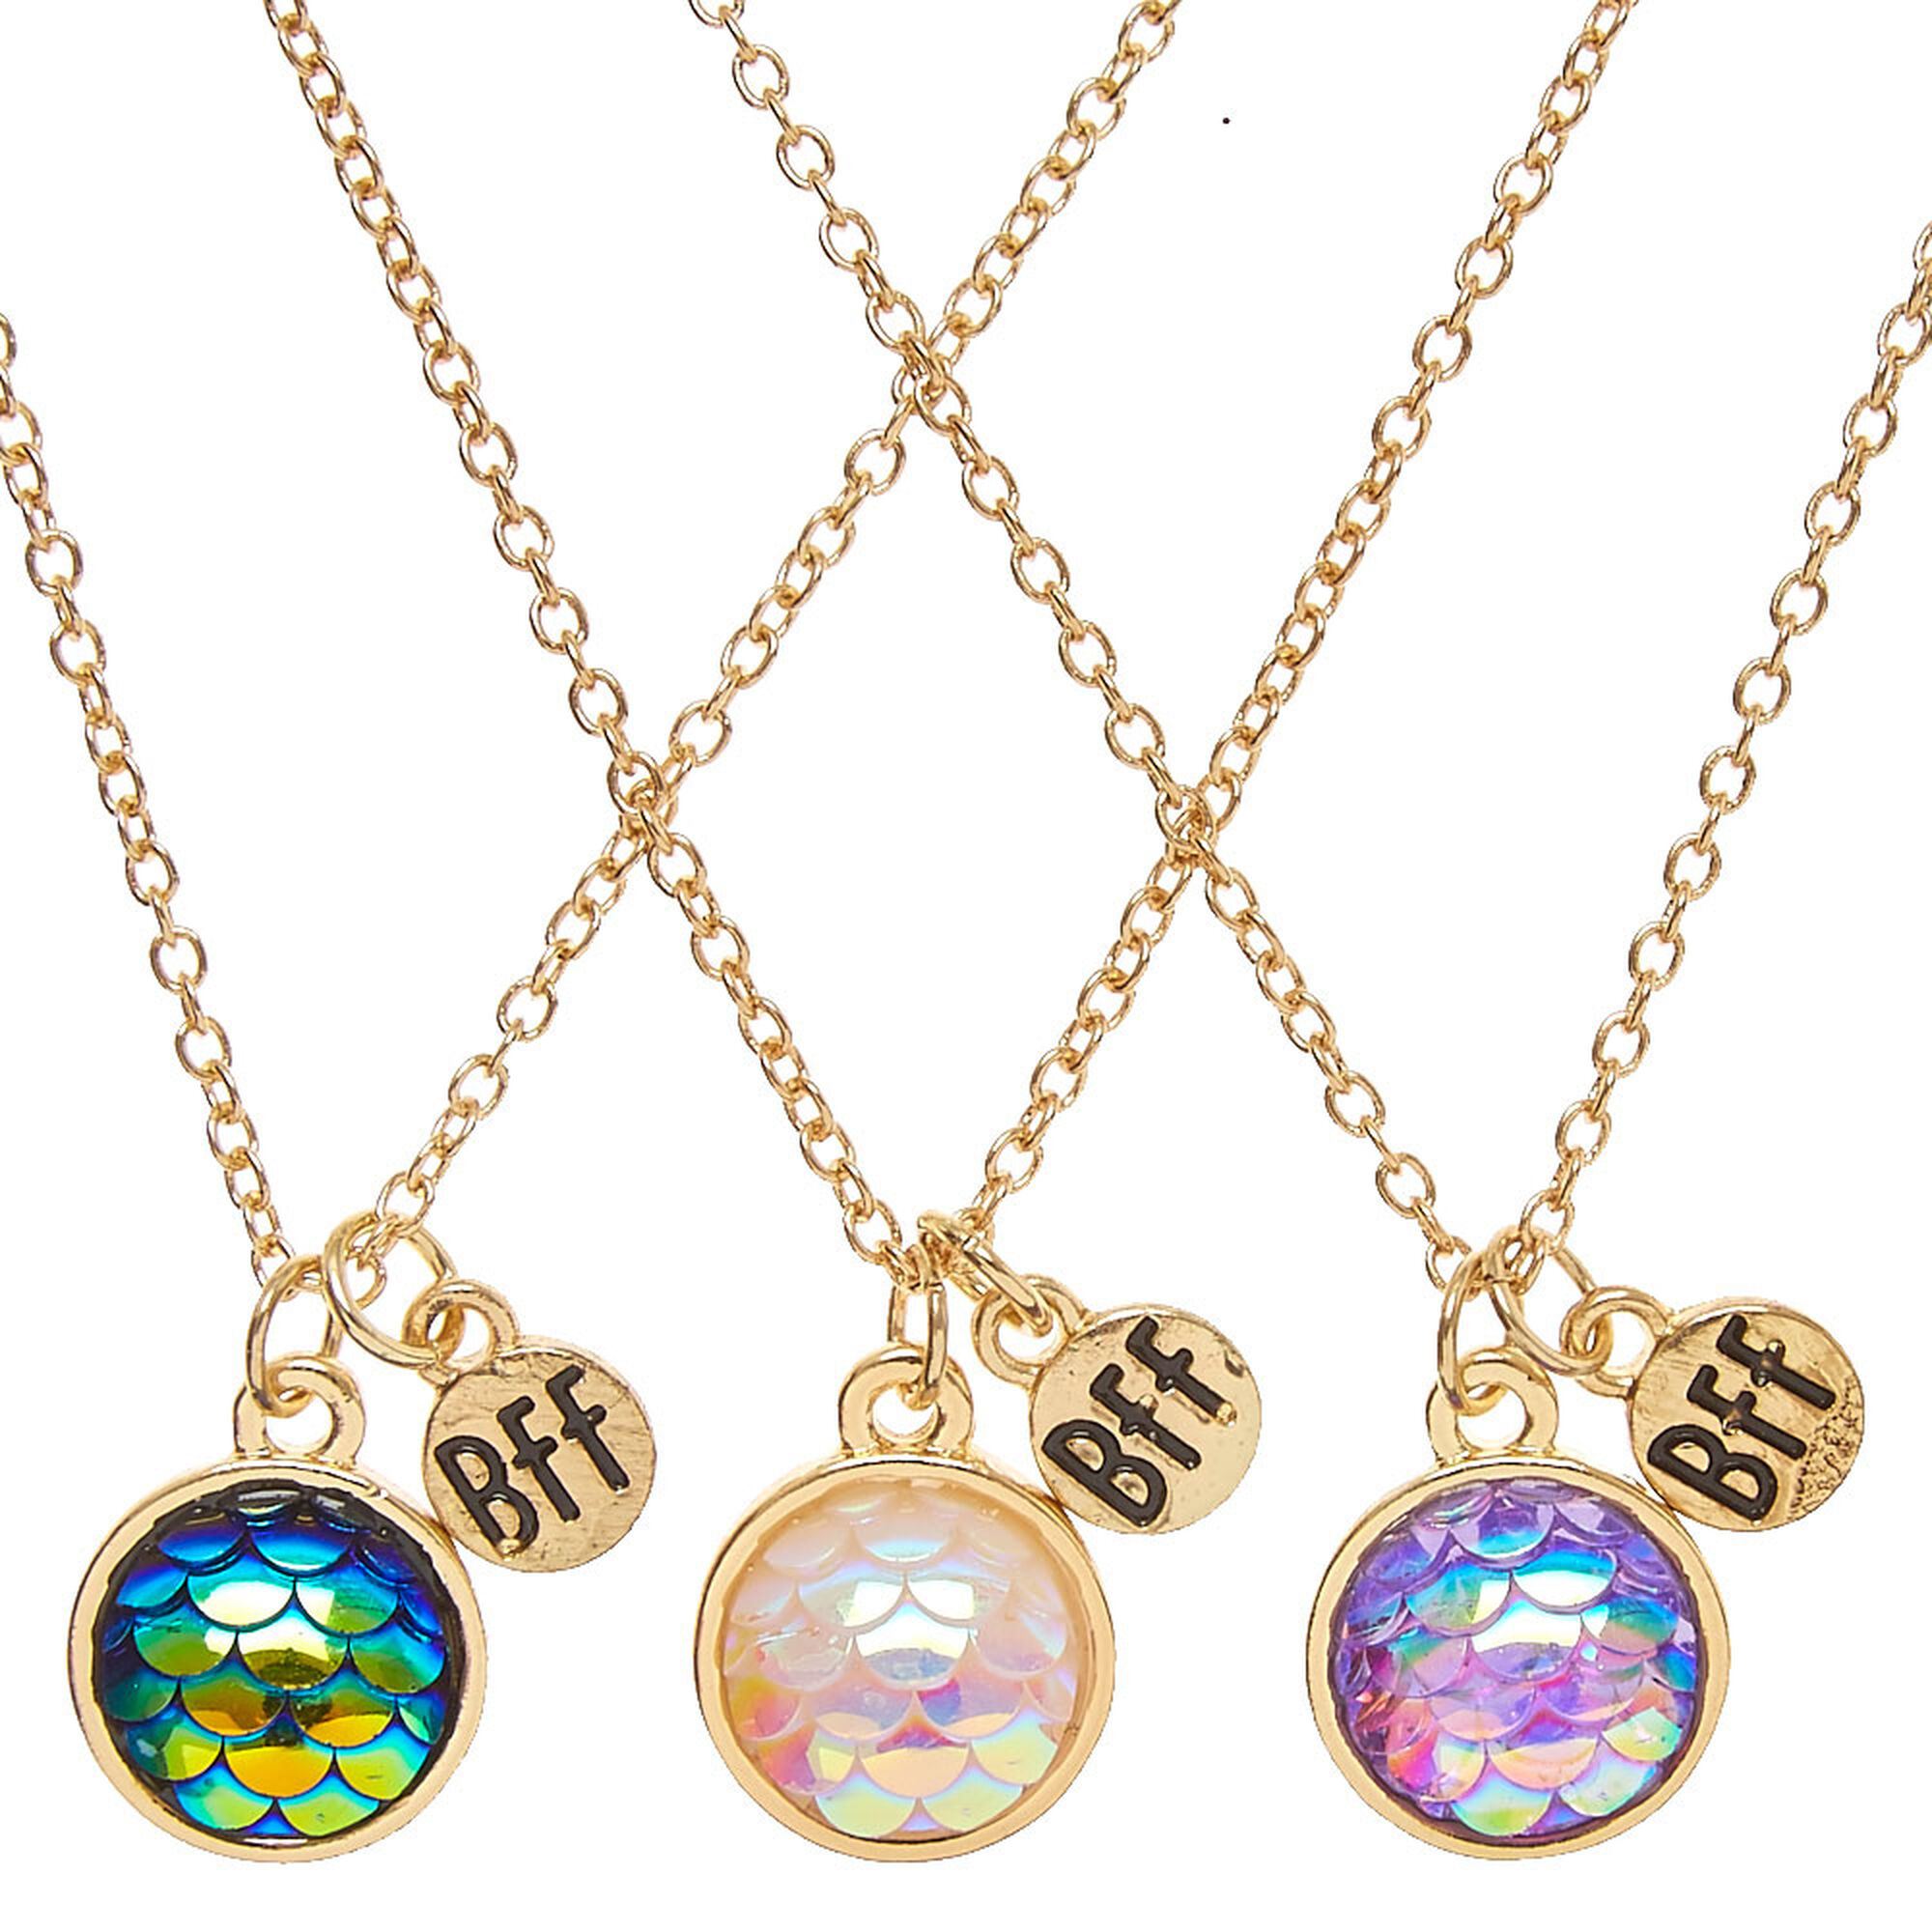 Lovely Best Friends Gold-tone Round Mermaid Scale Pendant Necklaces  OX41